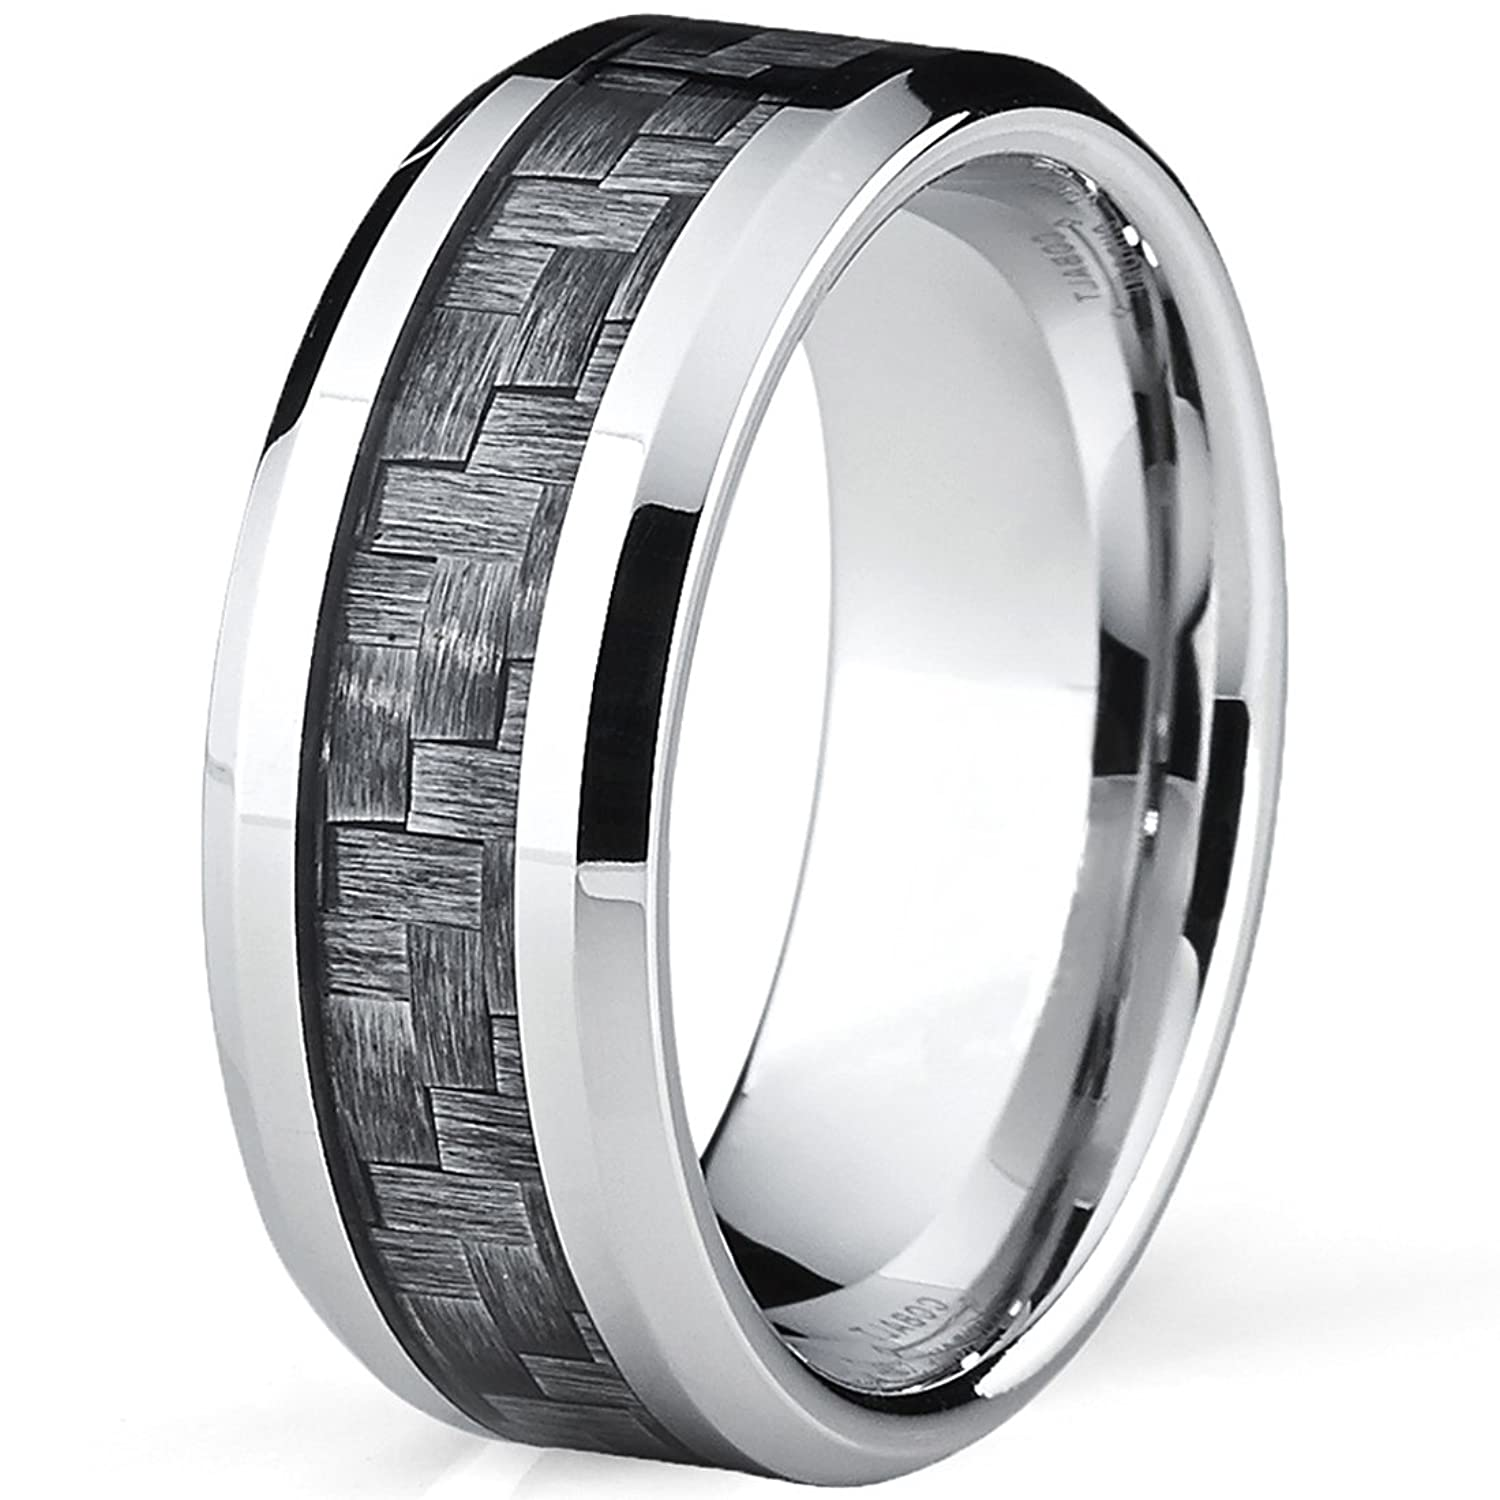 alpha a with is left face comparing rings of the cobalt ring types wedding mens tungsten right for materials on brushed